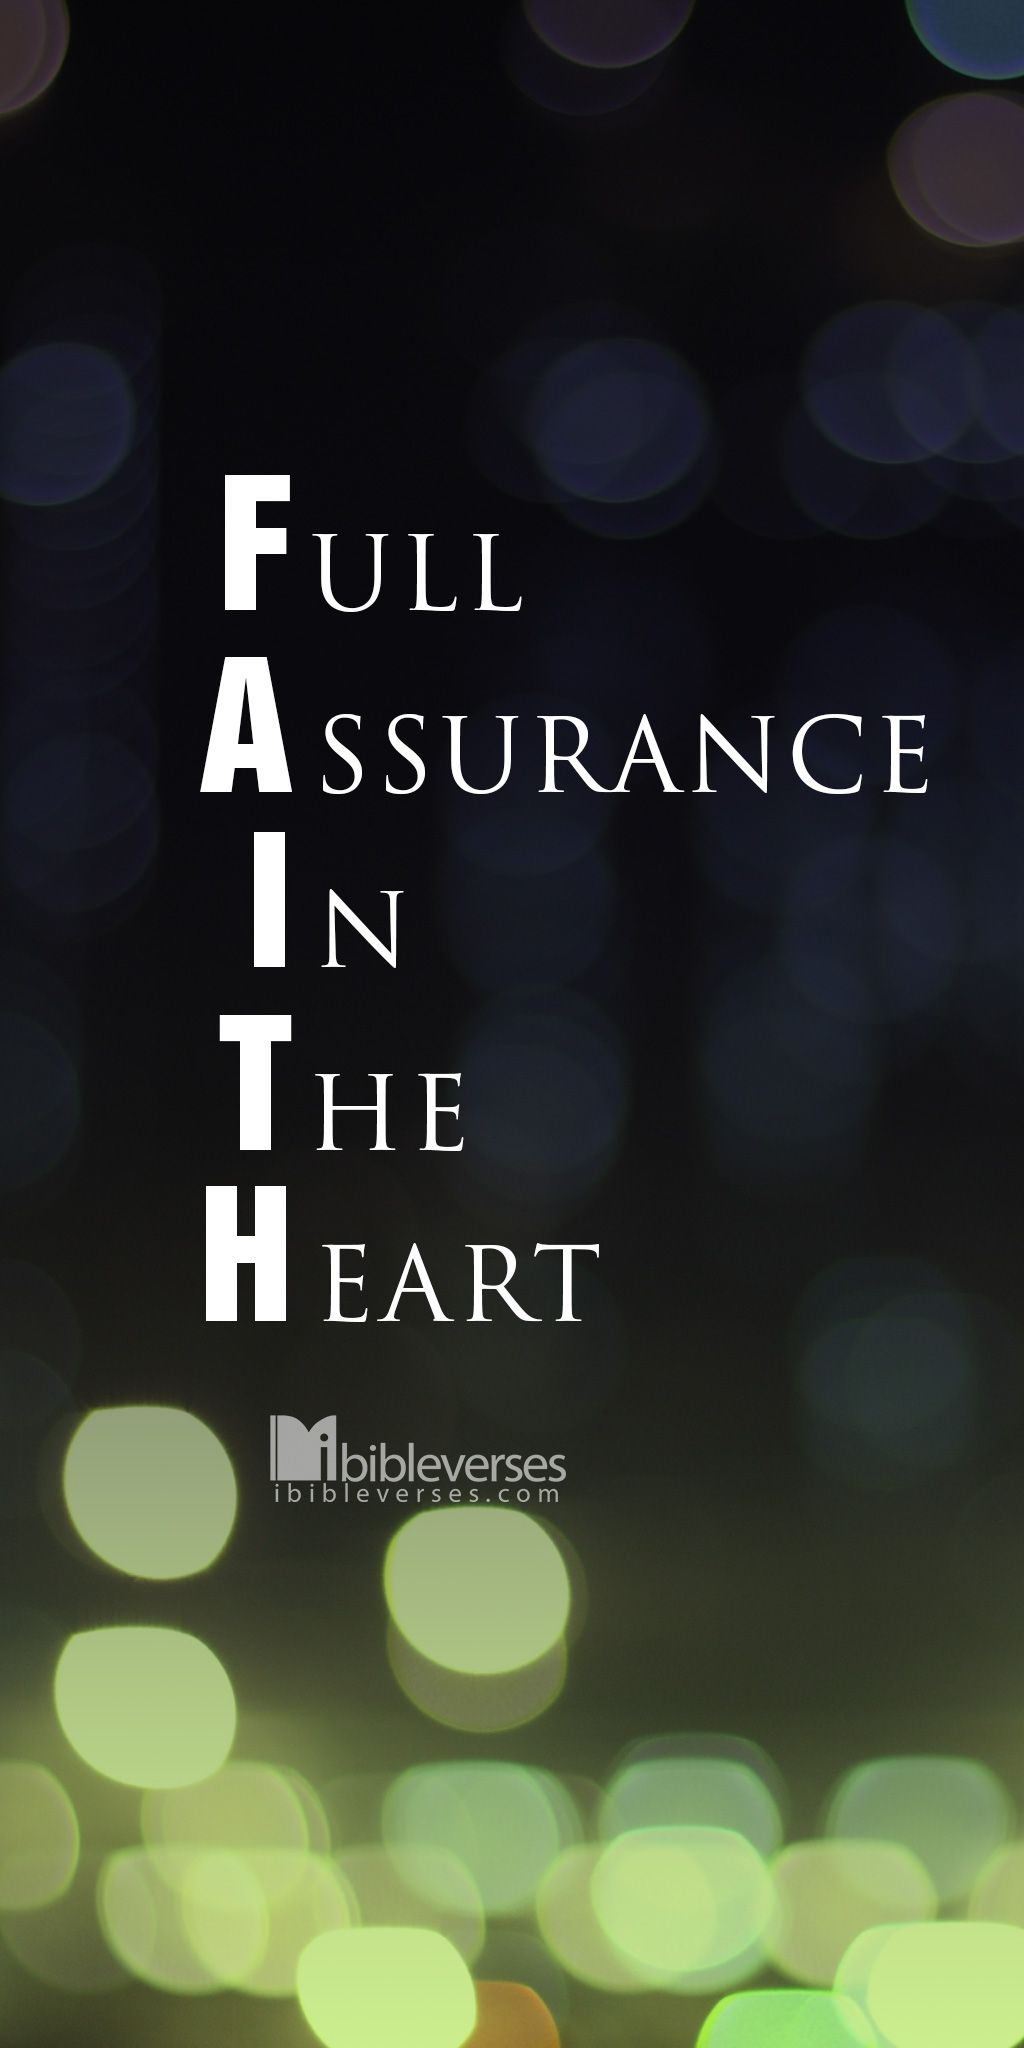 pin by dawn barton on faith | pinterest | faith, bible and bible